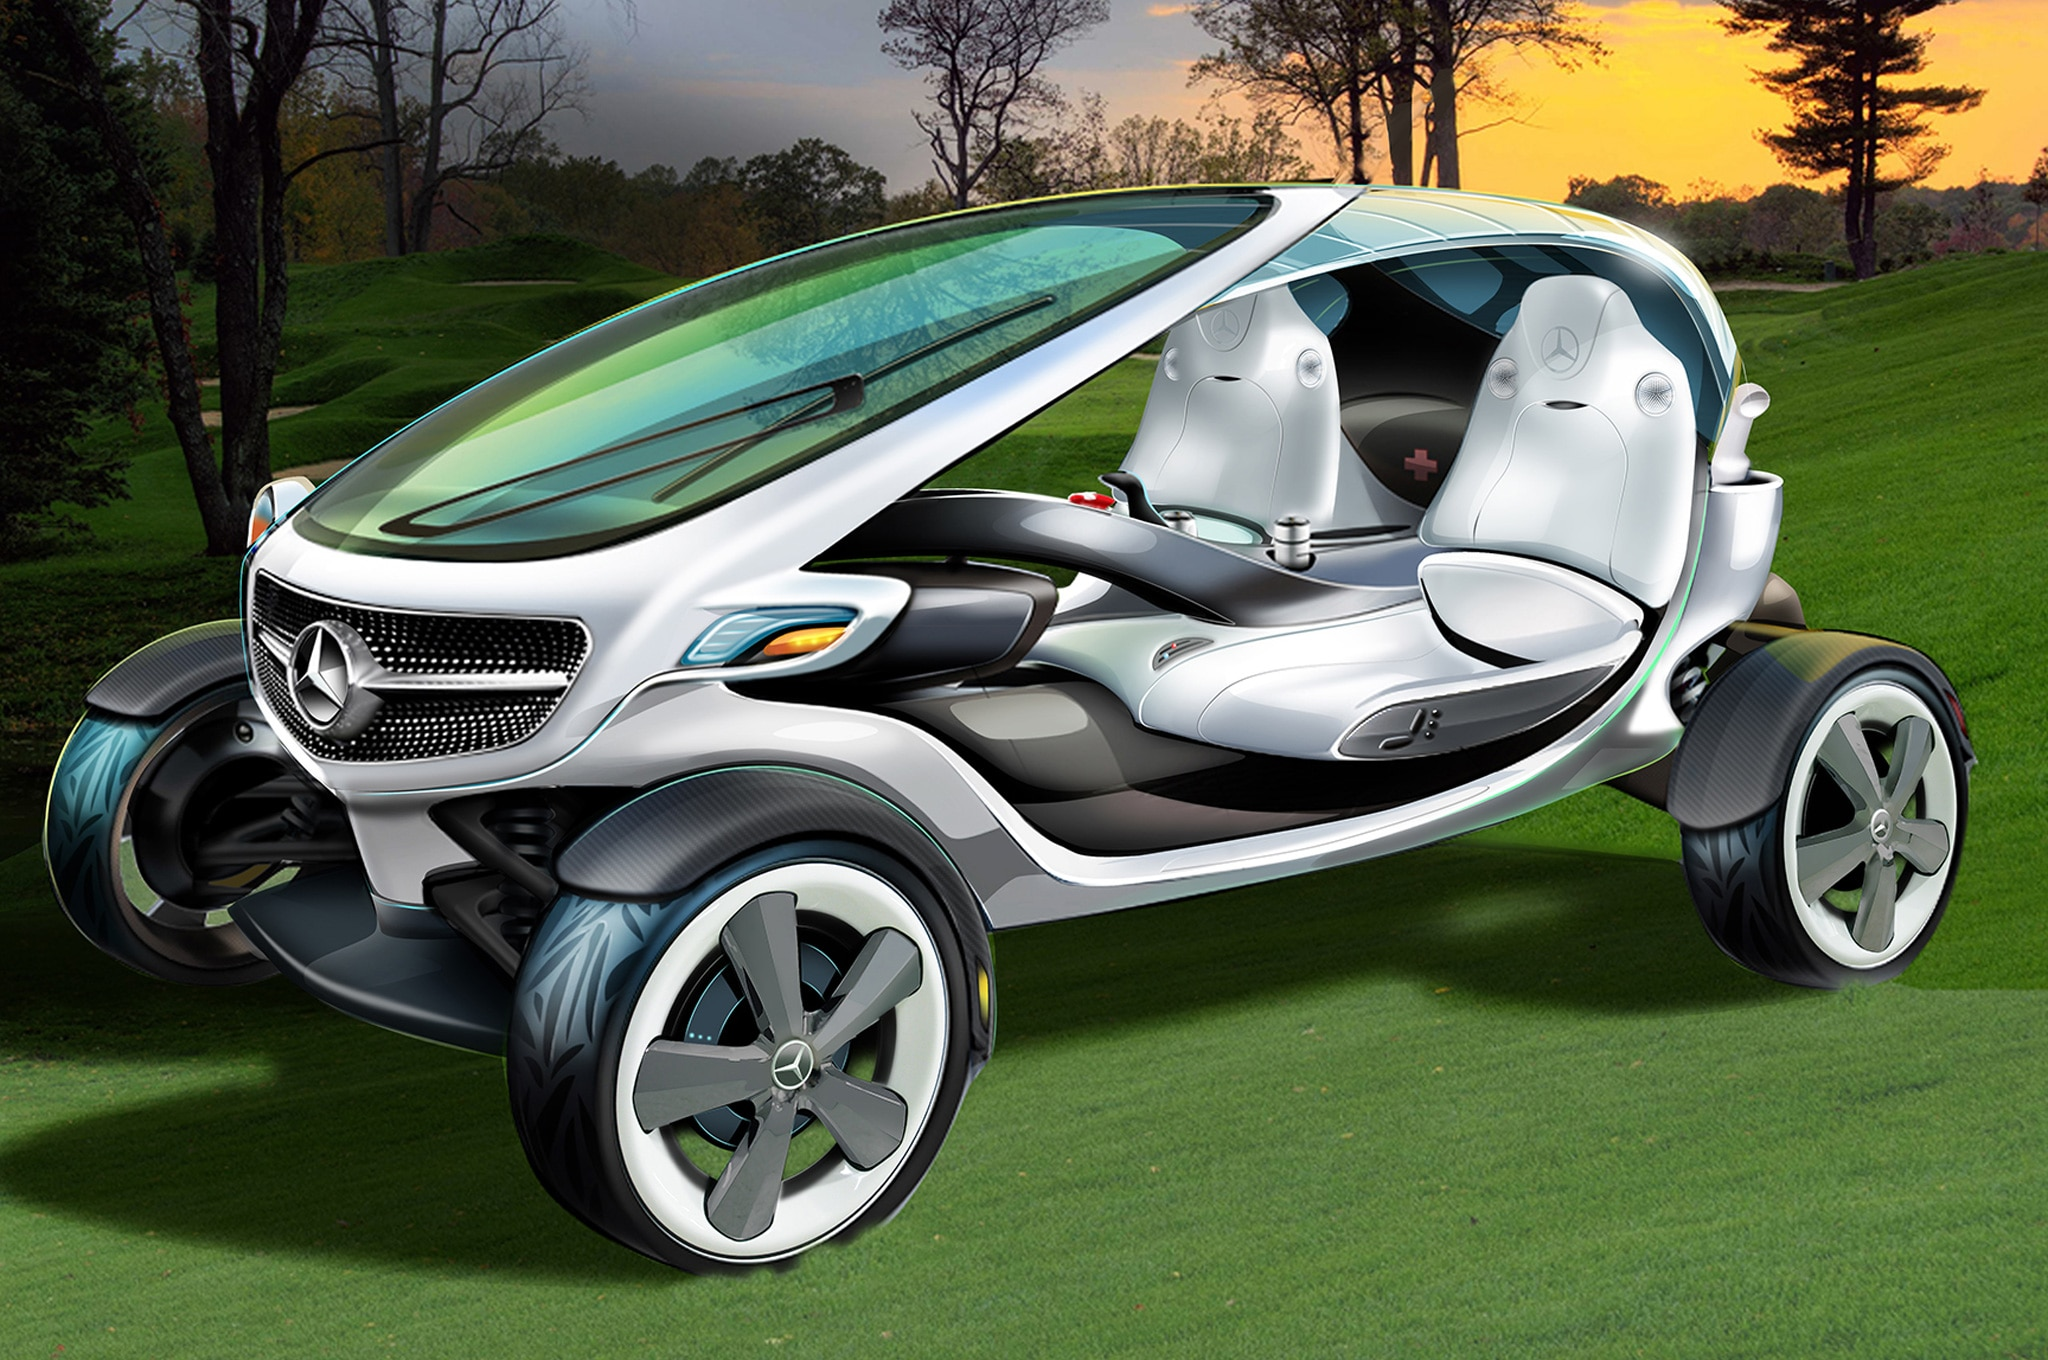 Mercedes Benz Vision Golf Cart Concept Front View On Course1